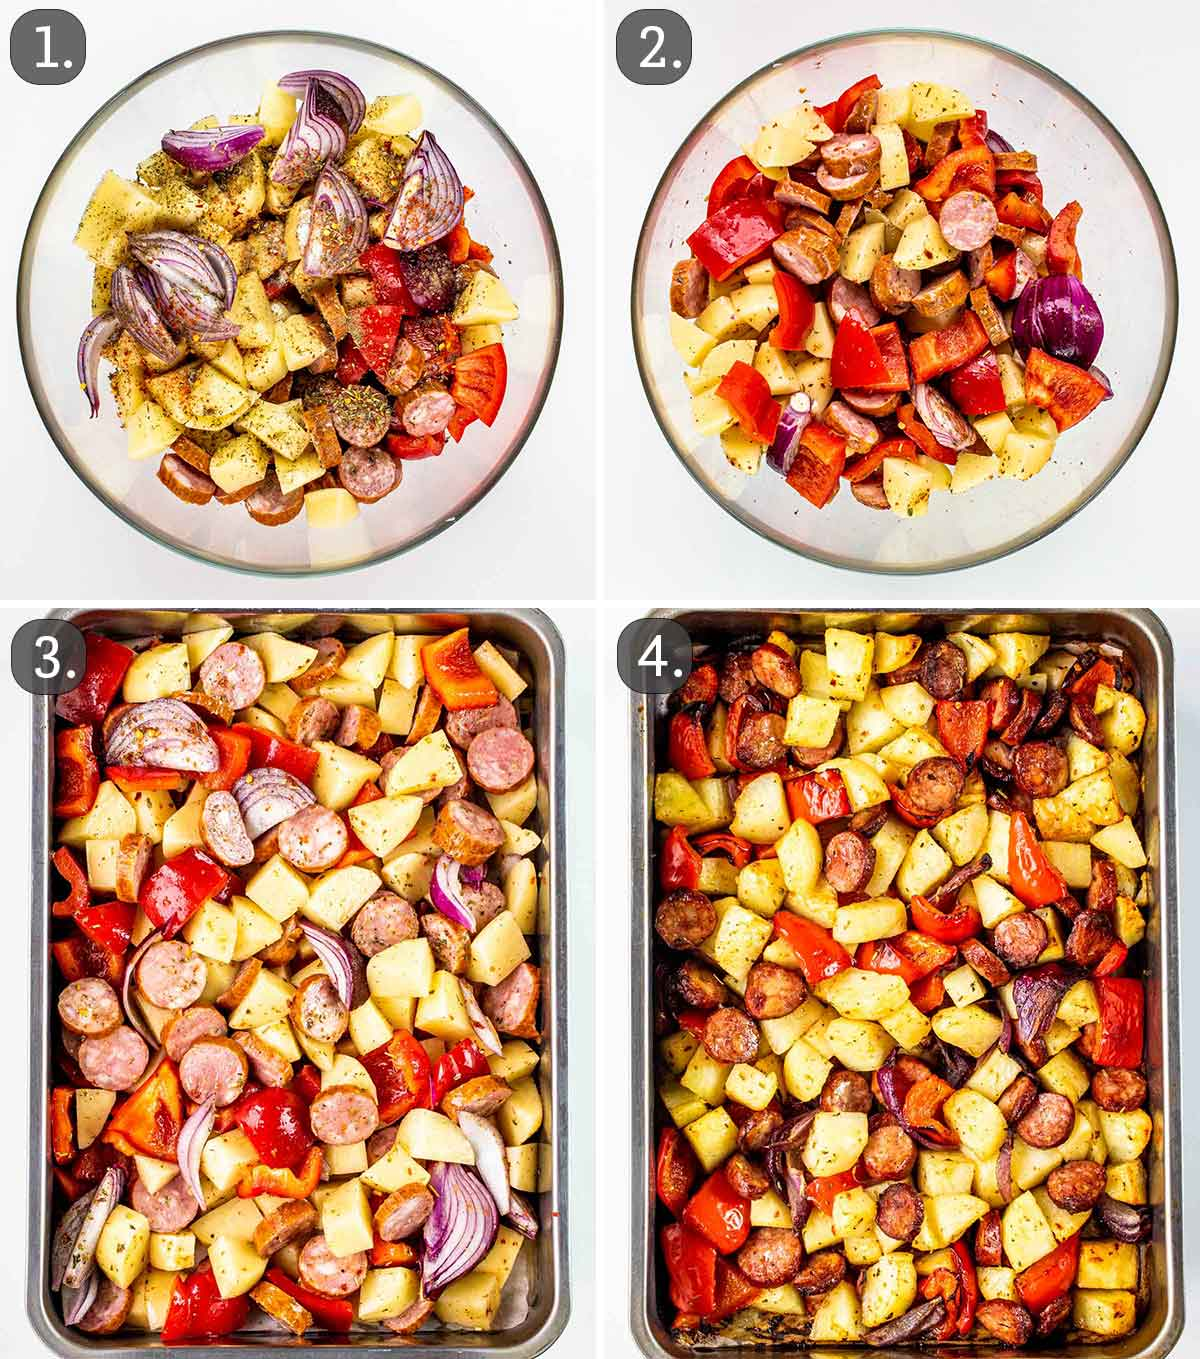 process shots showing how to make roasted sausage and potatoes.